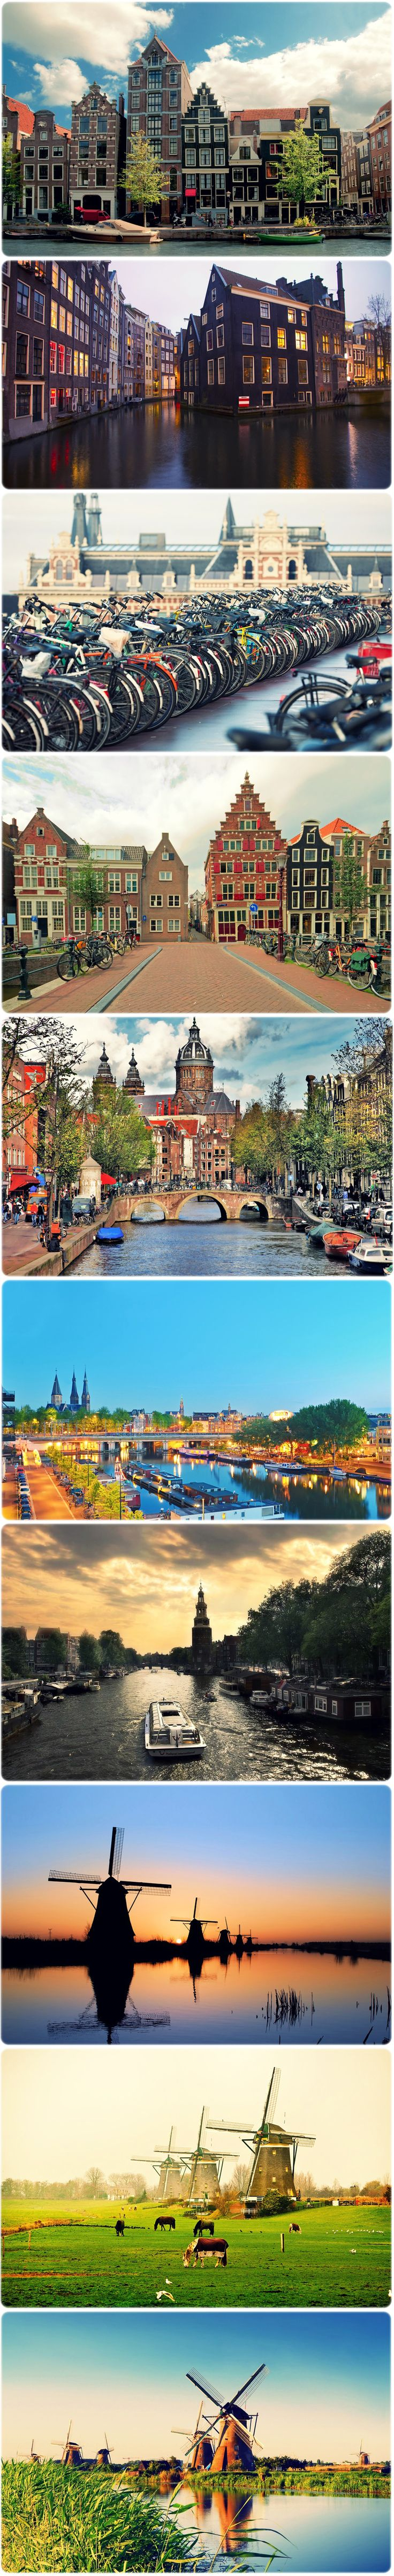 I want to go to Amsterdam and ride bikes and drink coffee by the canals...: